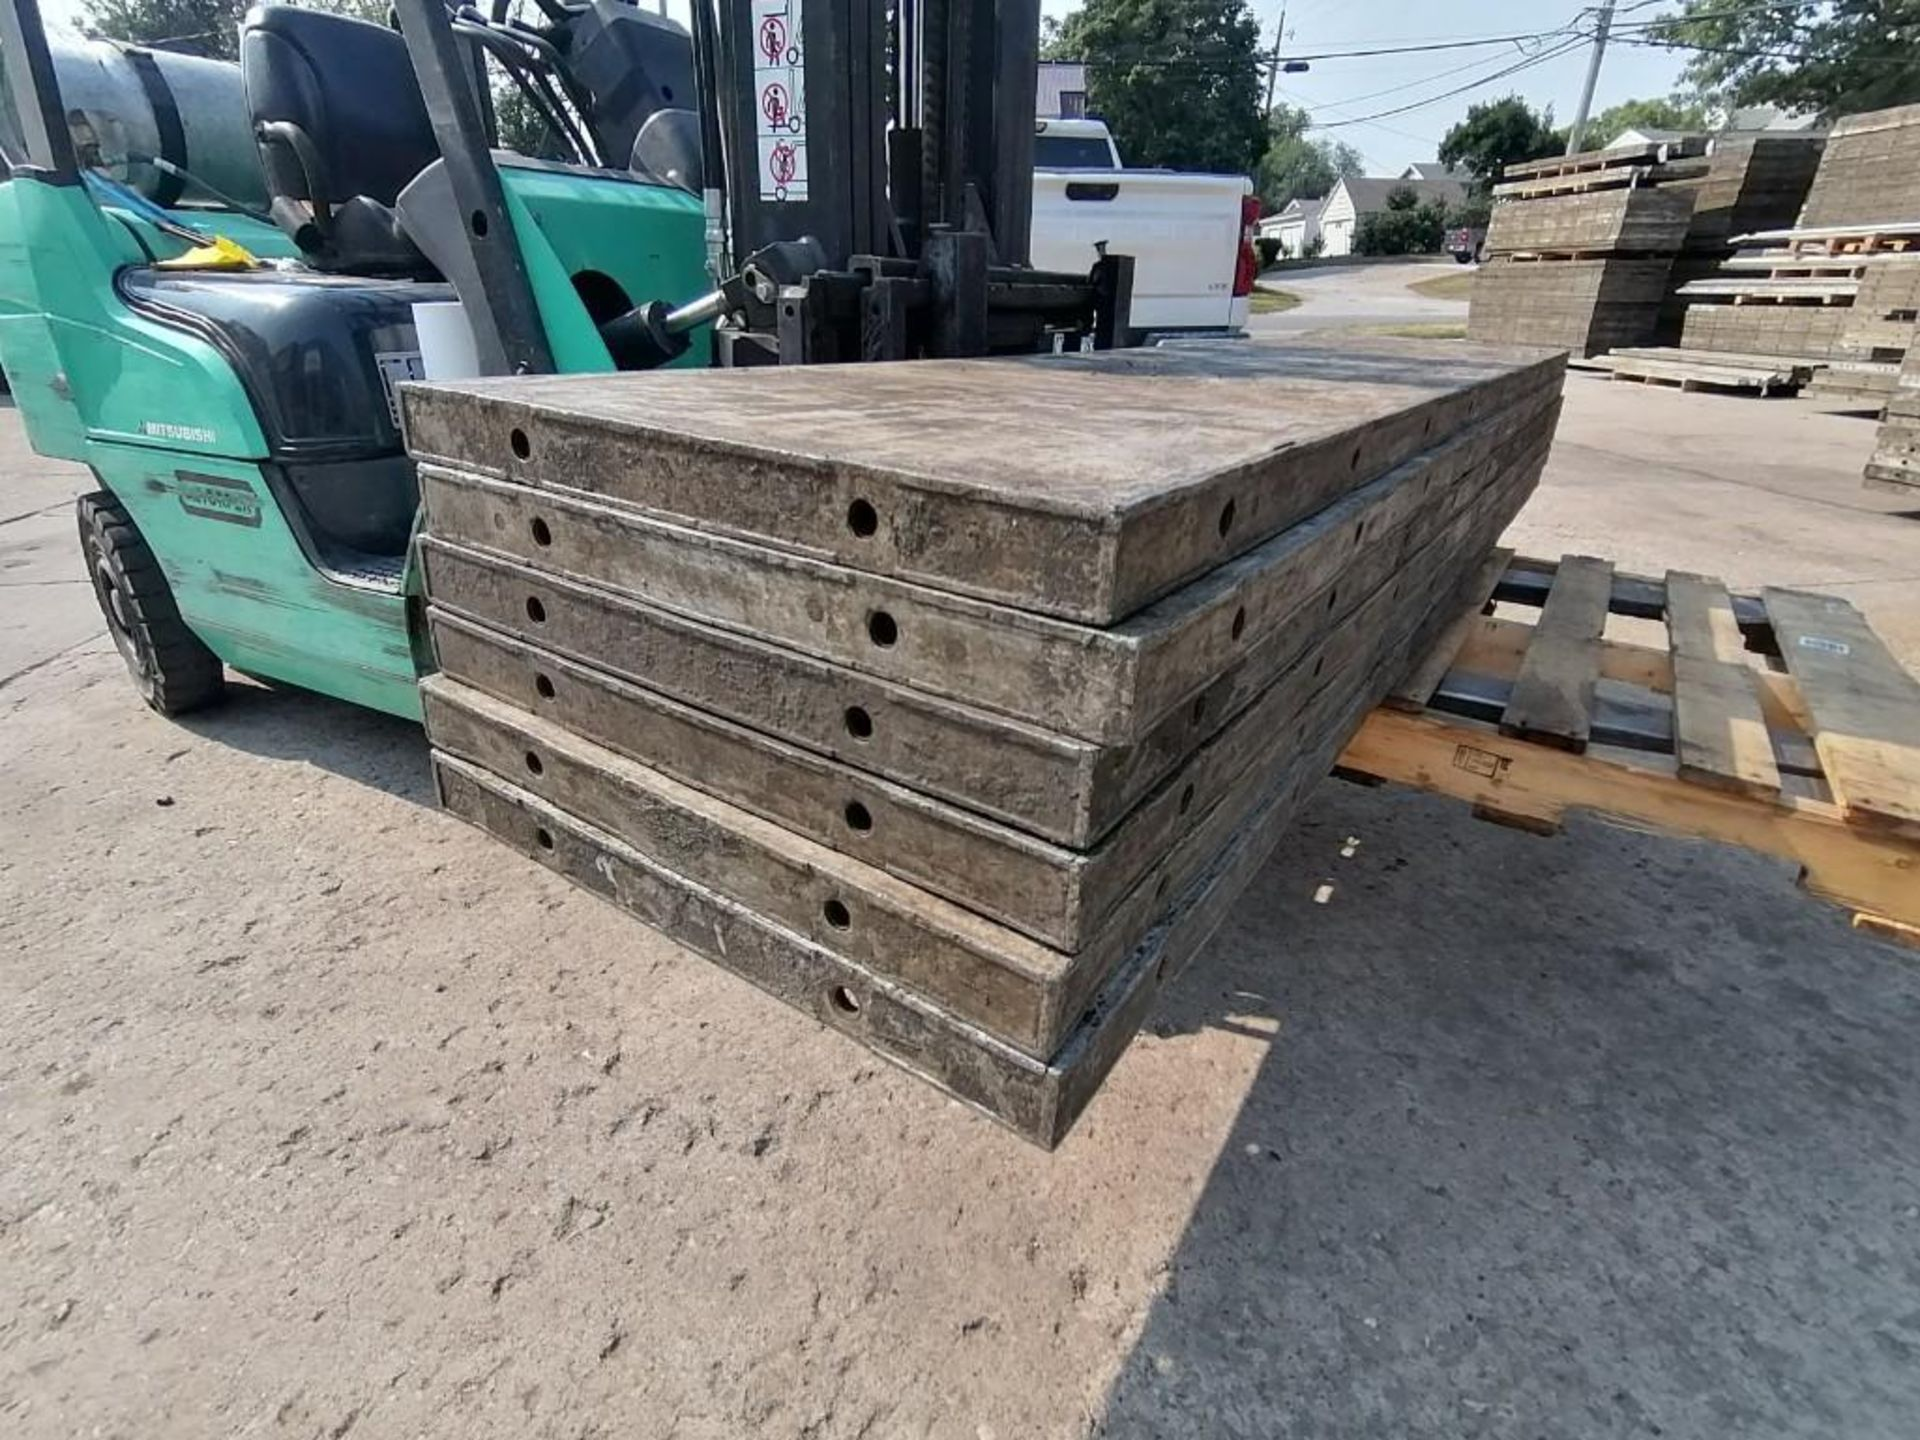 Lot 153 - (6) 2' x 9' Wall-Ties Aluminum Concrete Forms, Laydowns, Smooth 6-12 Hole Pattern. Located at 301